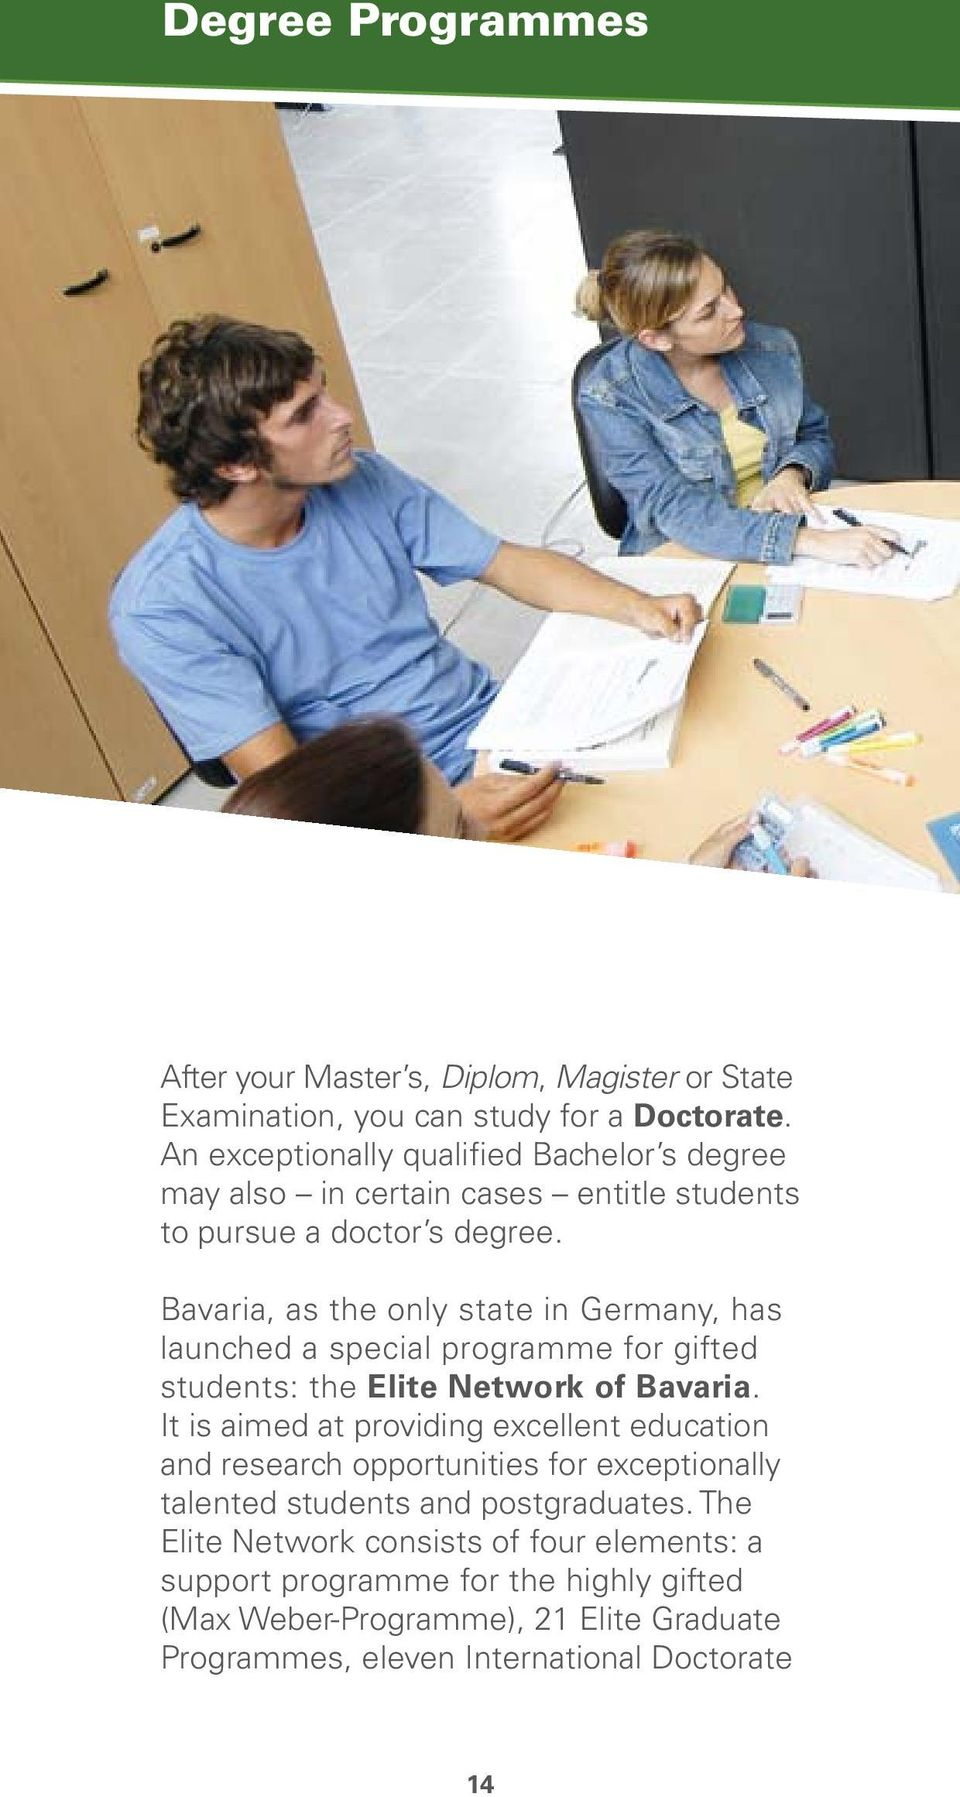 Bavaria, as the only state in Germany, has launched a special programme for gifted students: the Elite Network of Bavaria.